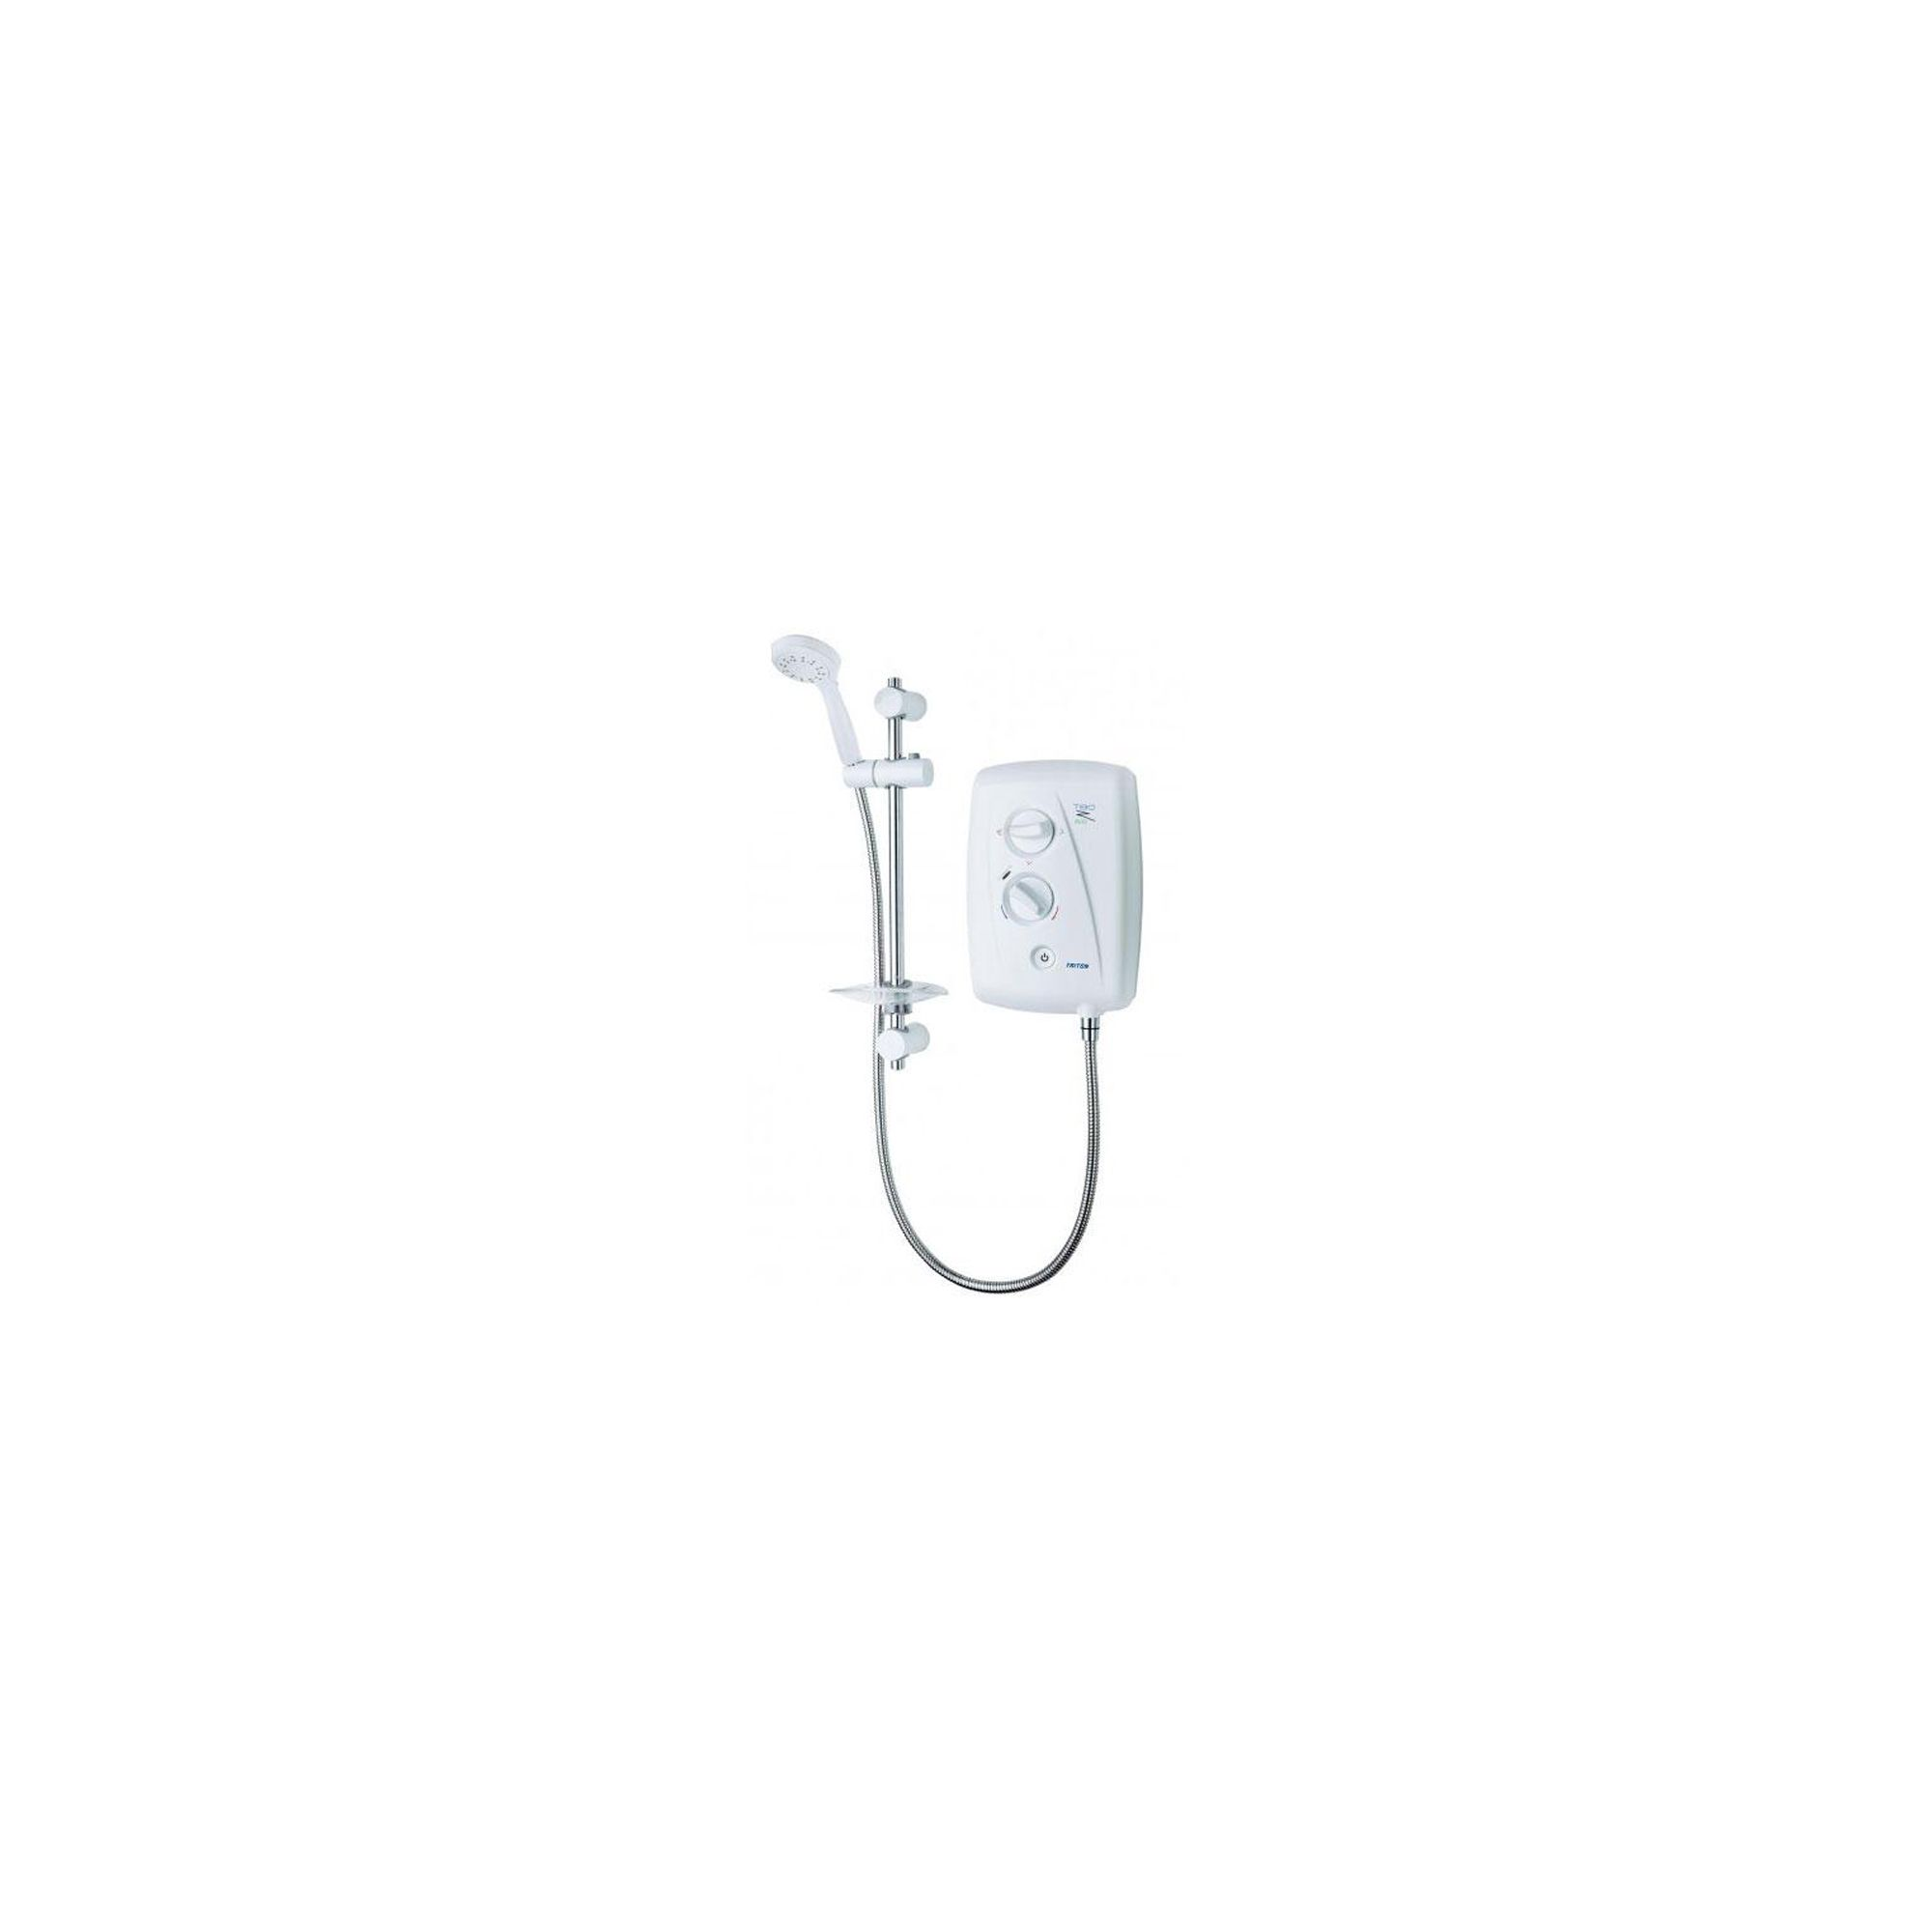 Triton T80Z Fast-Fit Eco Electric Shower White/Chrome 8.5 kW at Tesco Direct